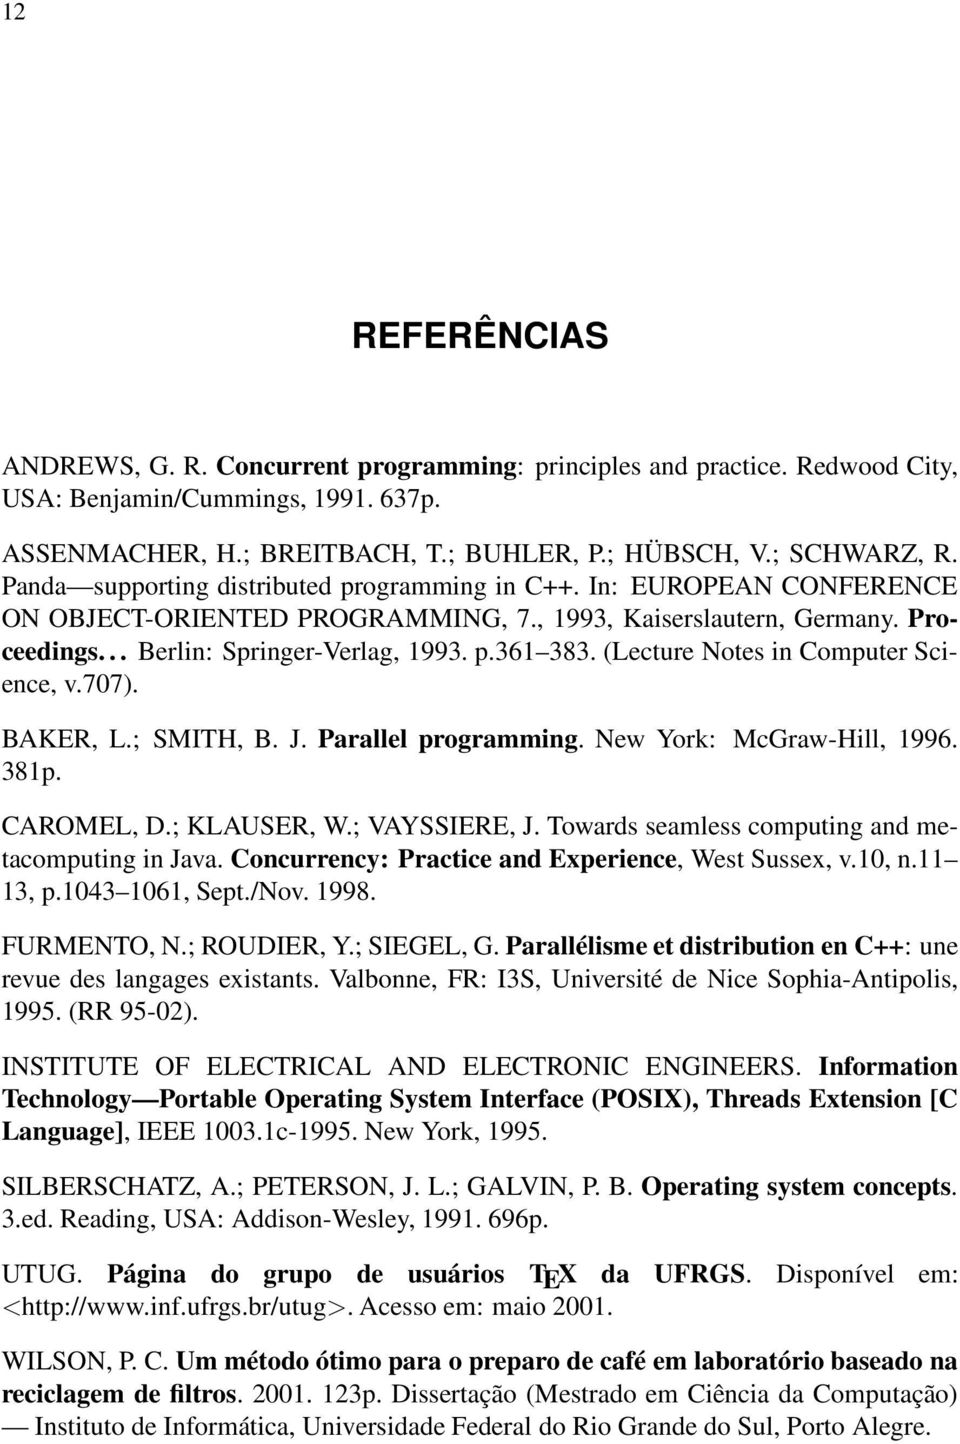 (Lecture Notes in Computer Science, v.707). BAKER, L.; SMITH, B. J. Parallel programming. New York: McGraw-Hill, 1996. 381p. CAROMEL, D.; KLAUSER, W.; VAYSSIERE, J.